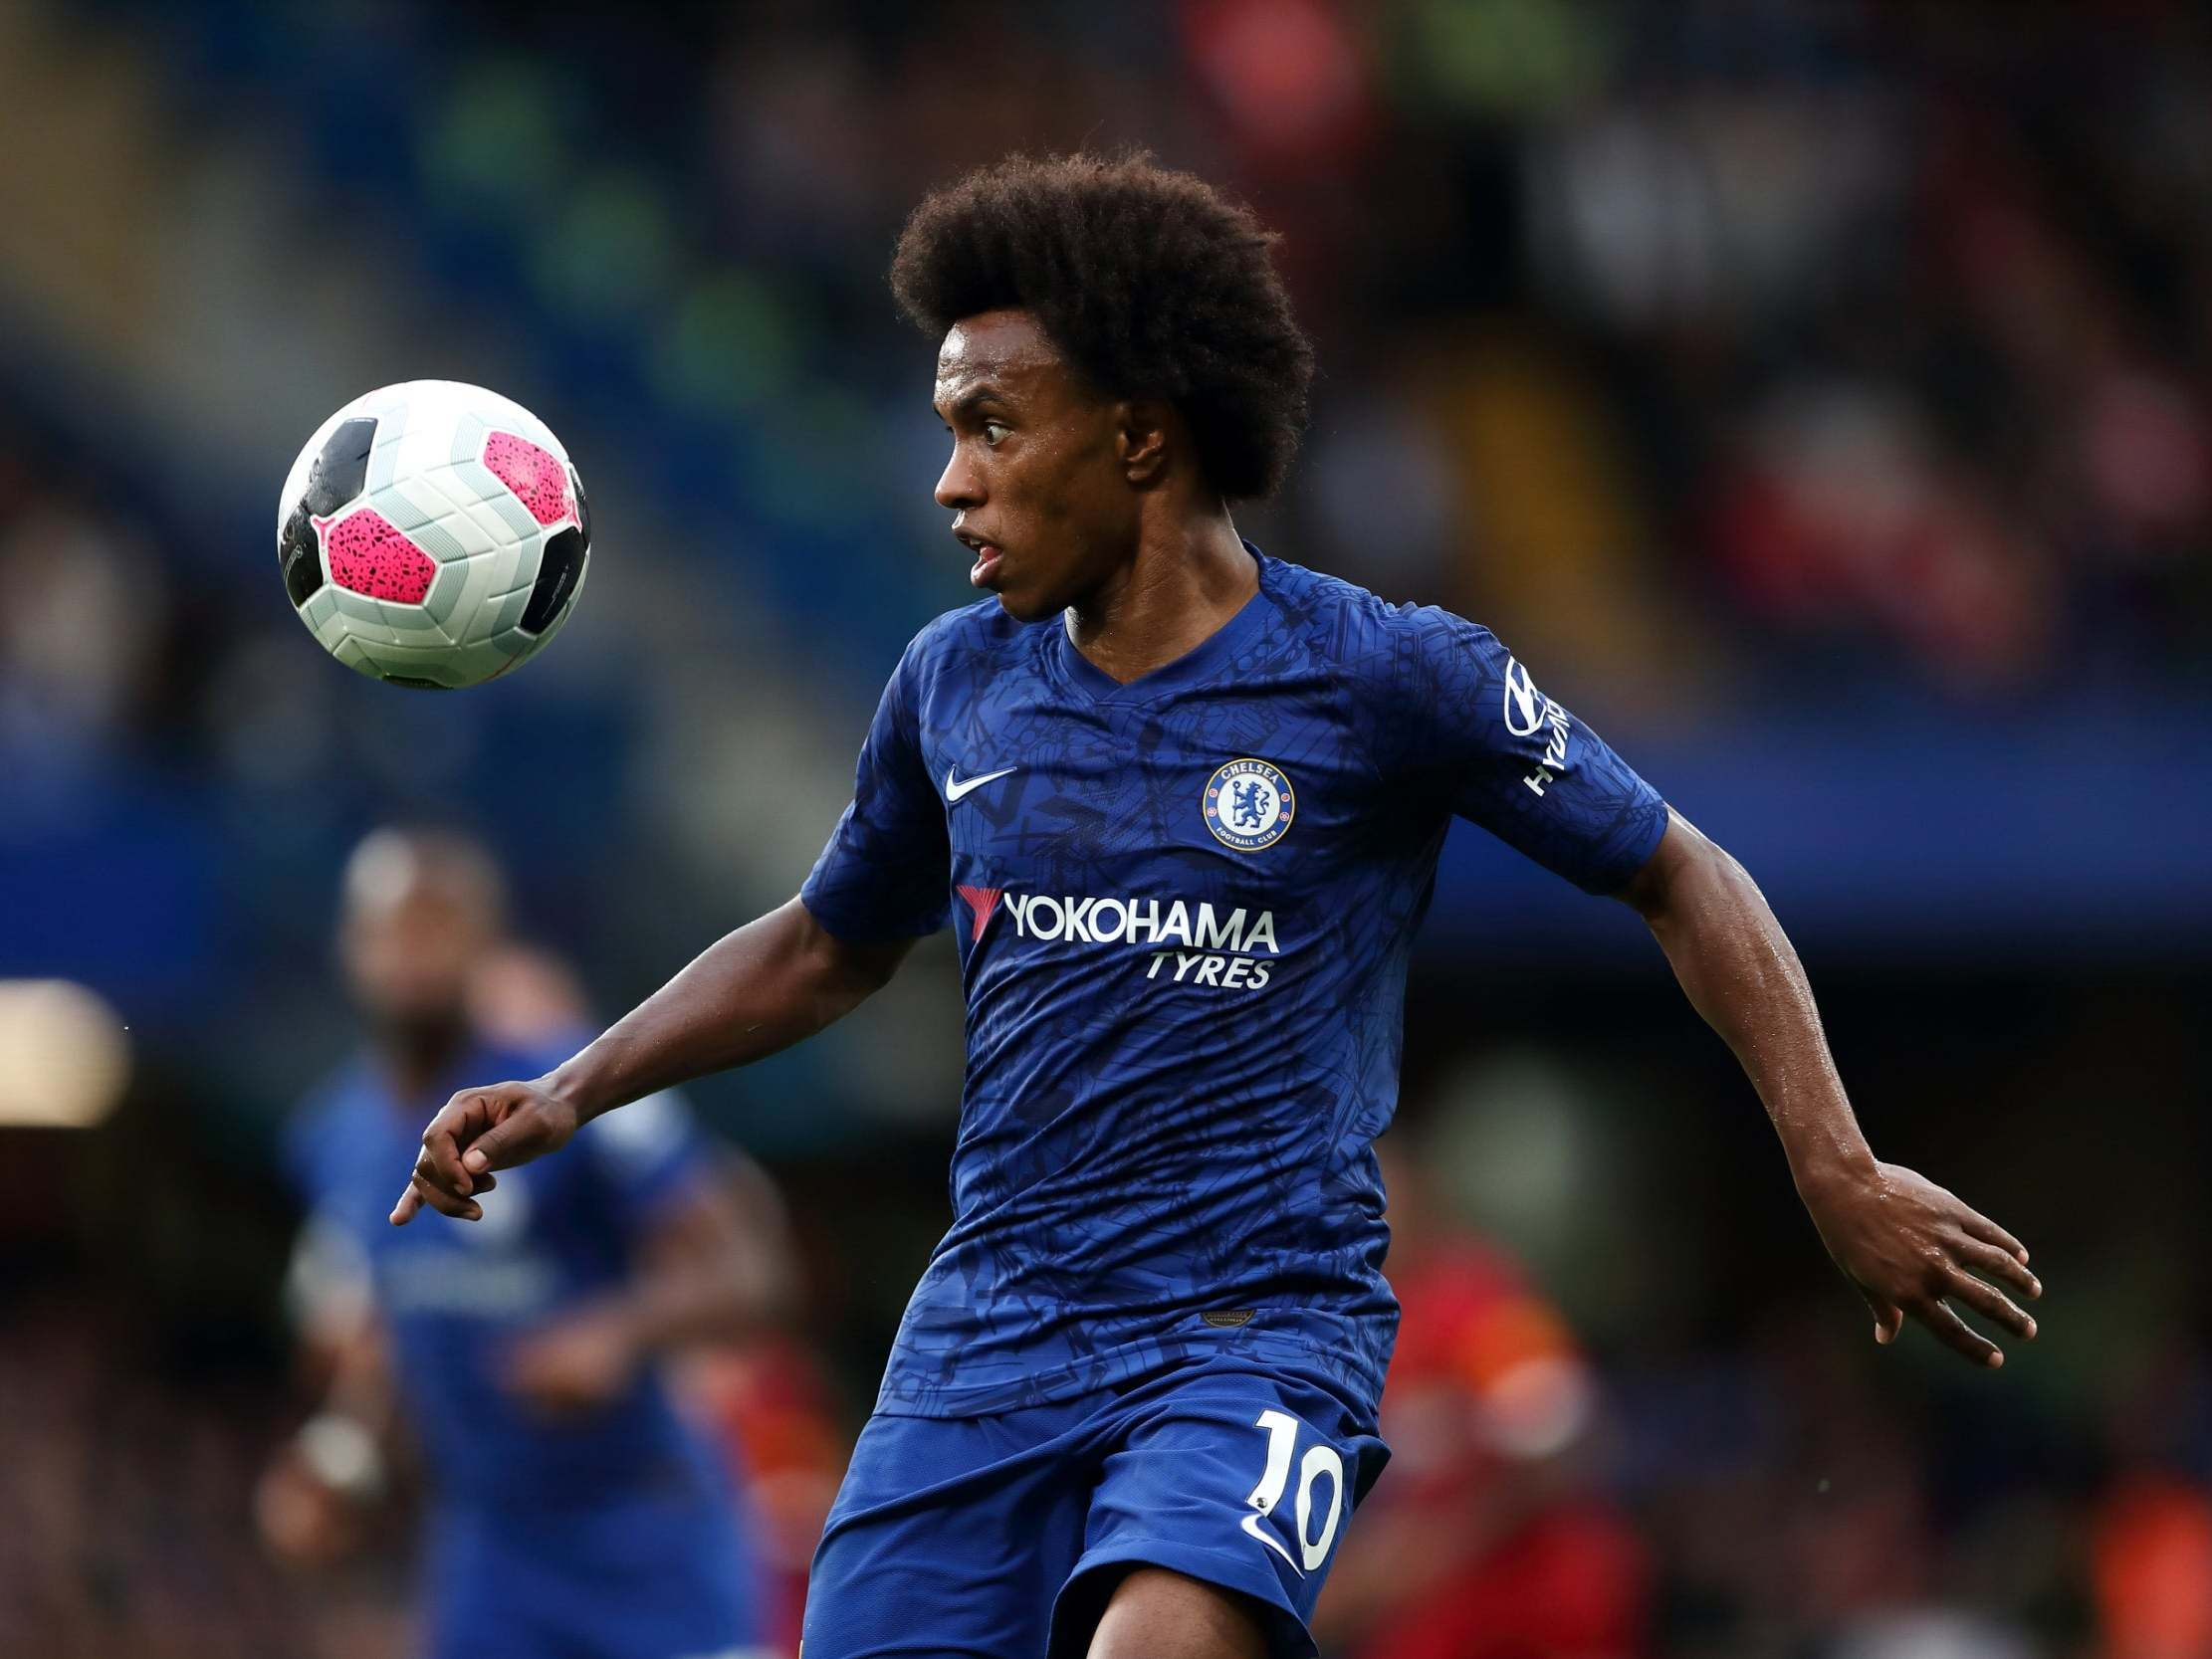 Jose Mourinho plotting reunion with Chelsea star Willian as Tottenham 'keep tabs on Brazilian' with his contract set to expire this summer - Bóng Đá